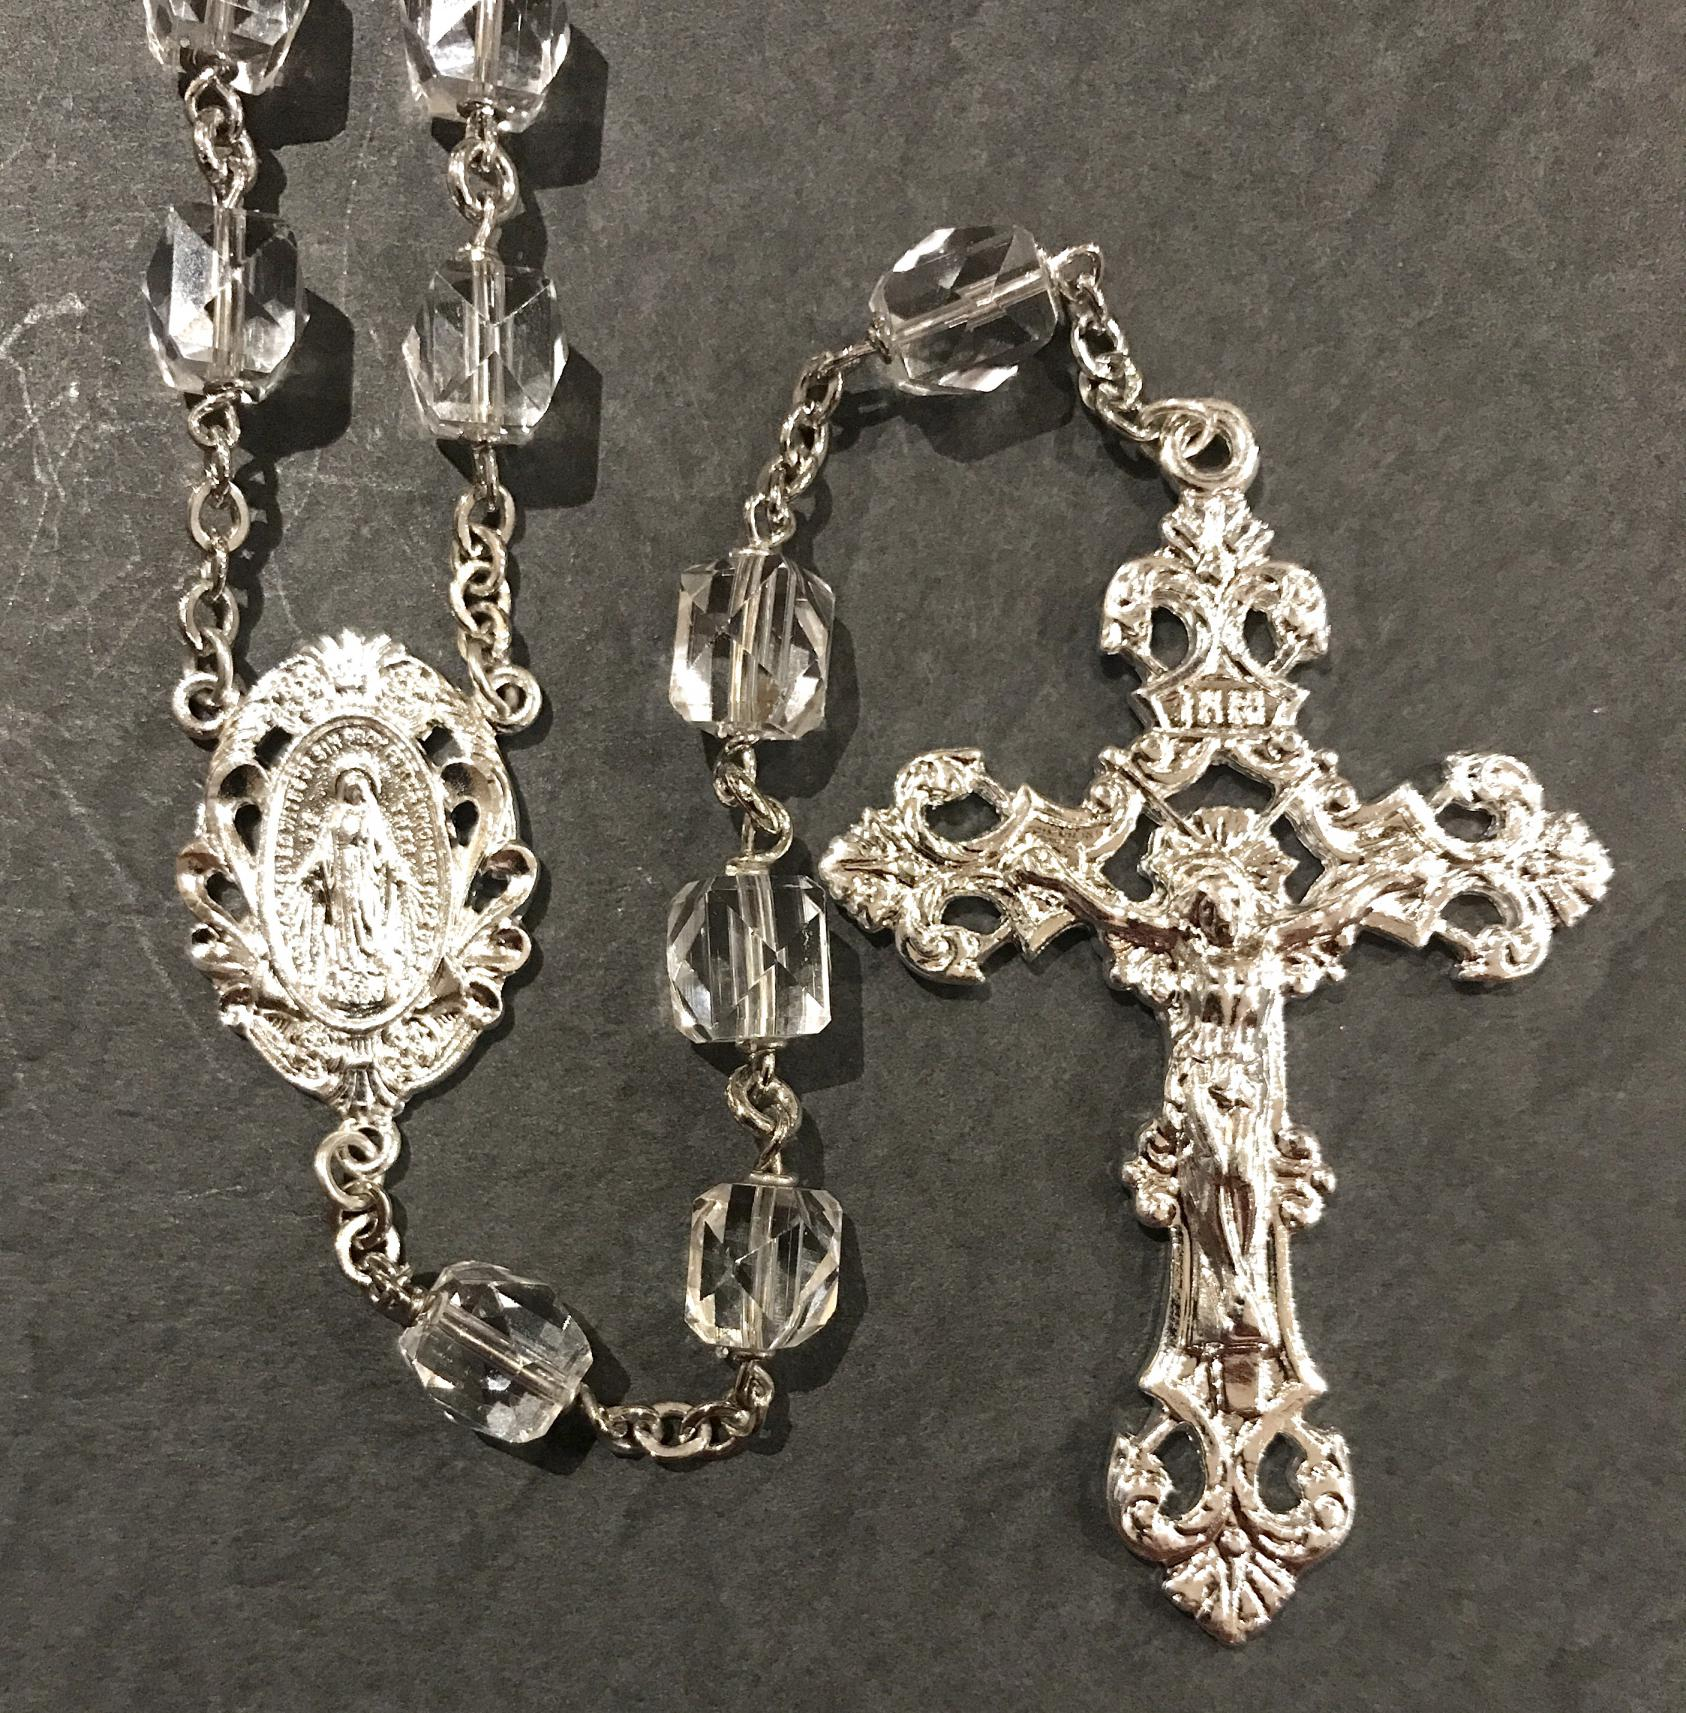 7mm MULTI FACETED ROCK CRYSTAL BEAD ROSARY WITH HAND TWISTED CONSTRUCTION AND STERLING SILVER PLATED CRUCIFIX, CENTER, WIRE, CHAIN GIFT BOXED